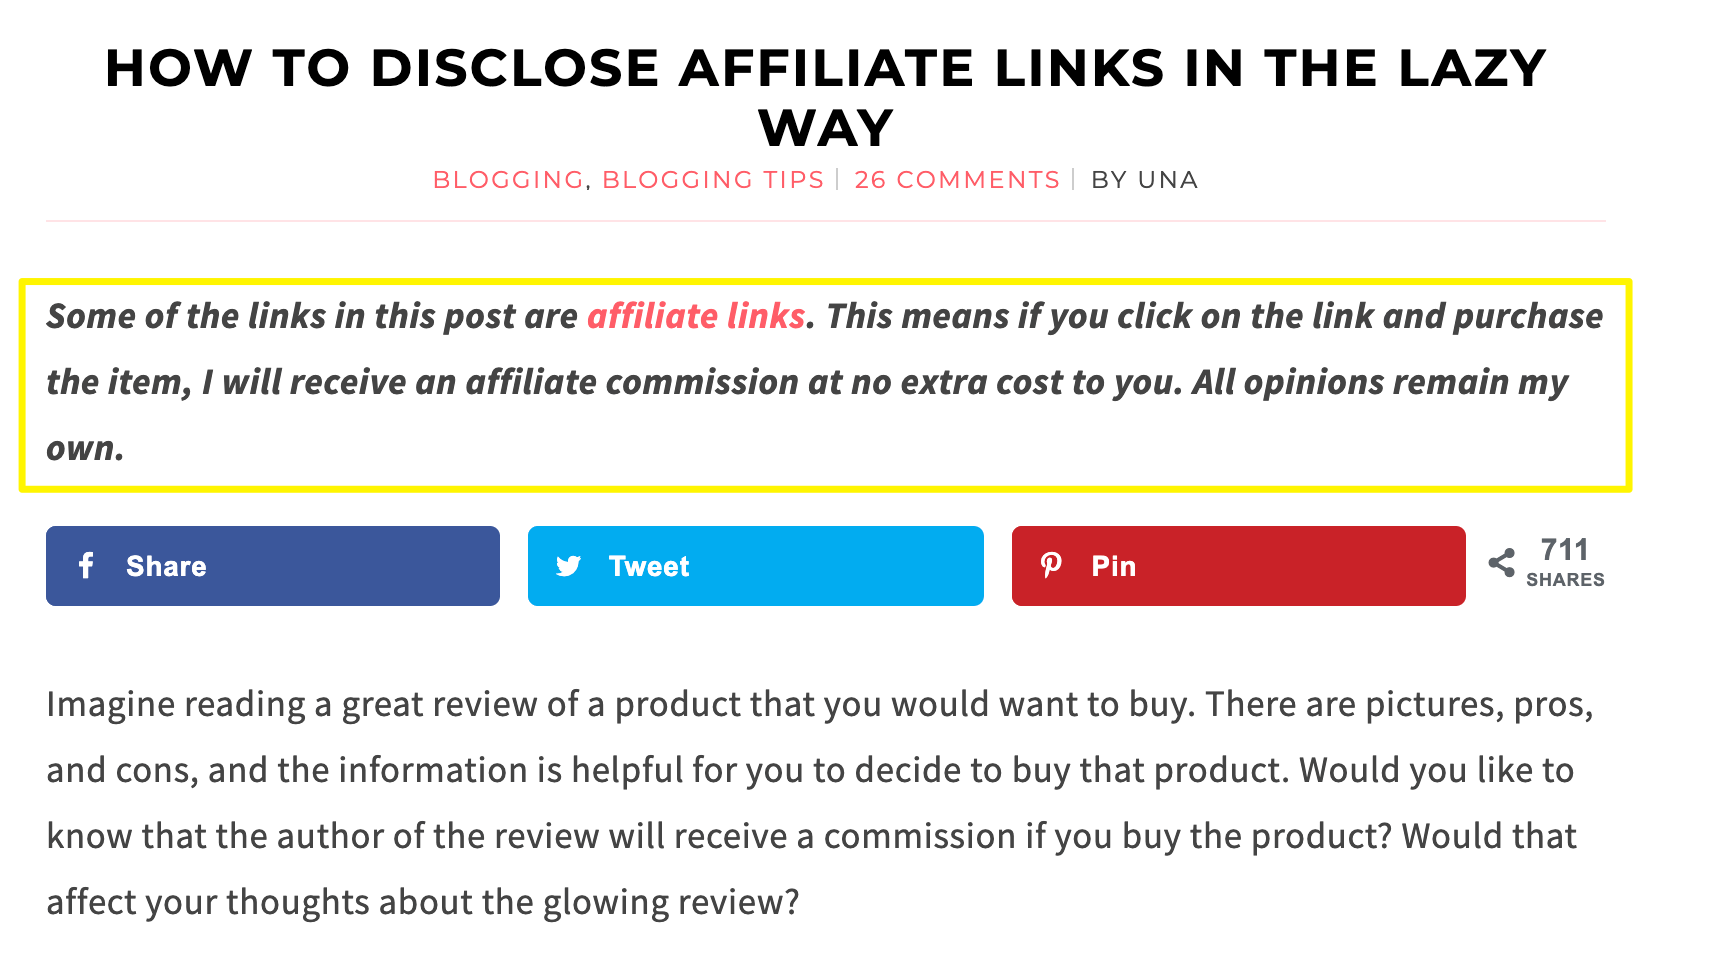 An example of a short affiliate link disclosure in a blog post.